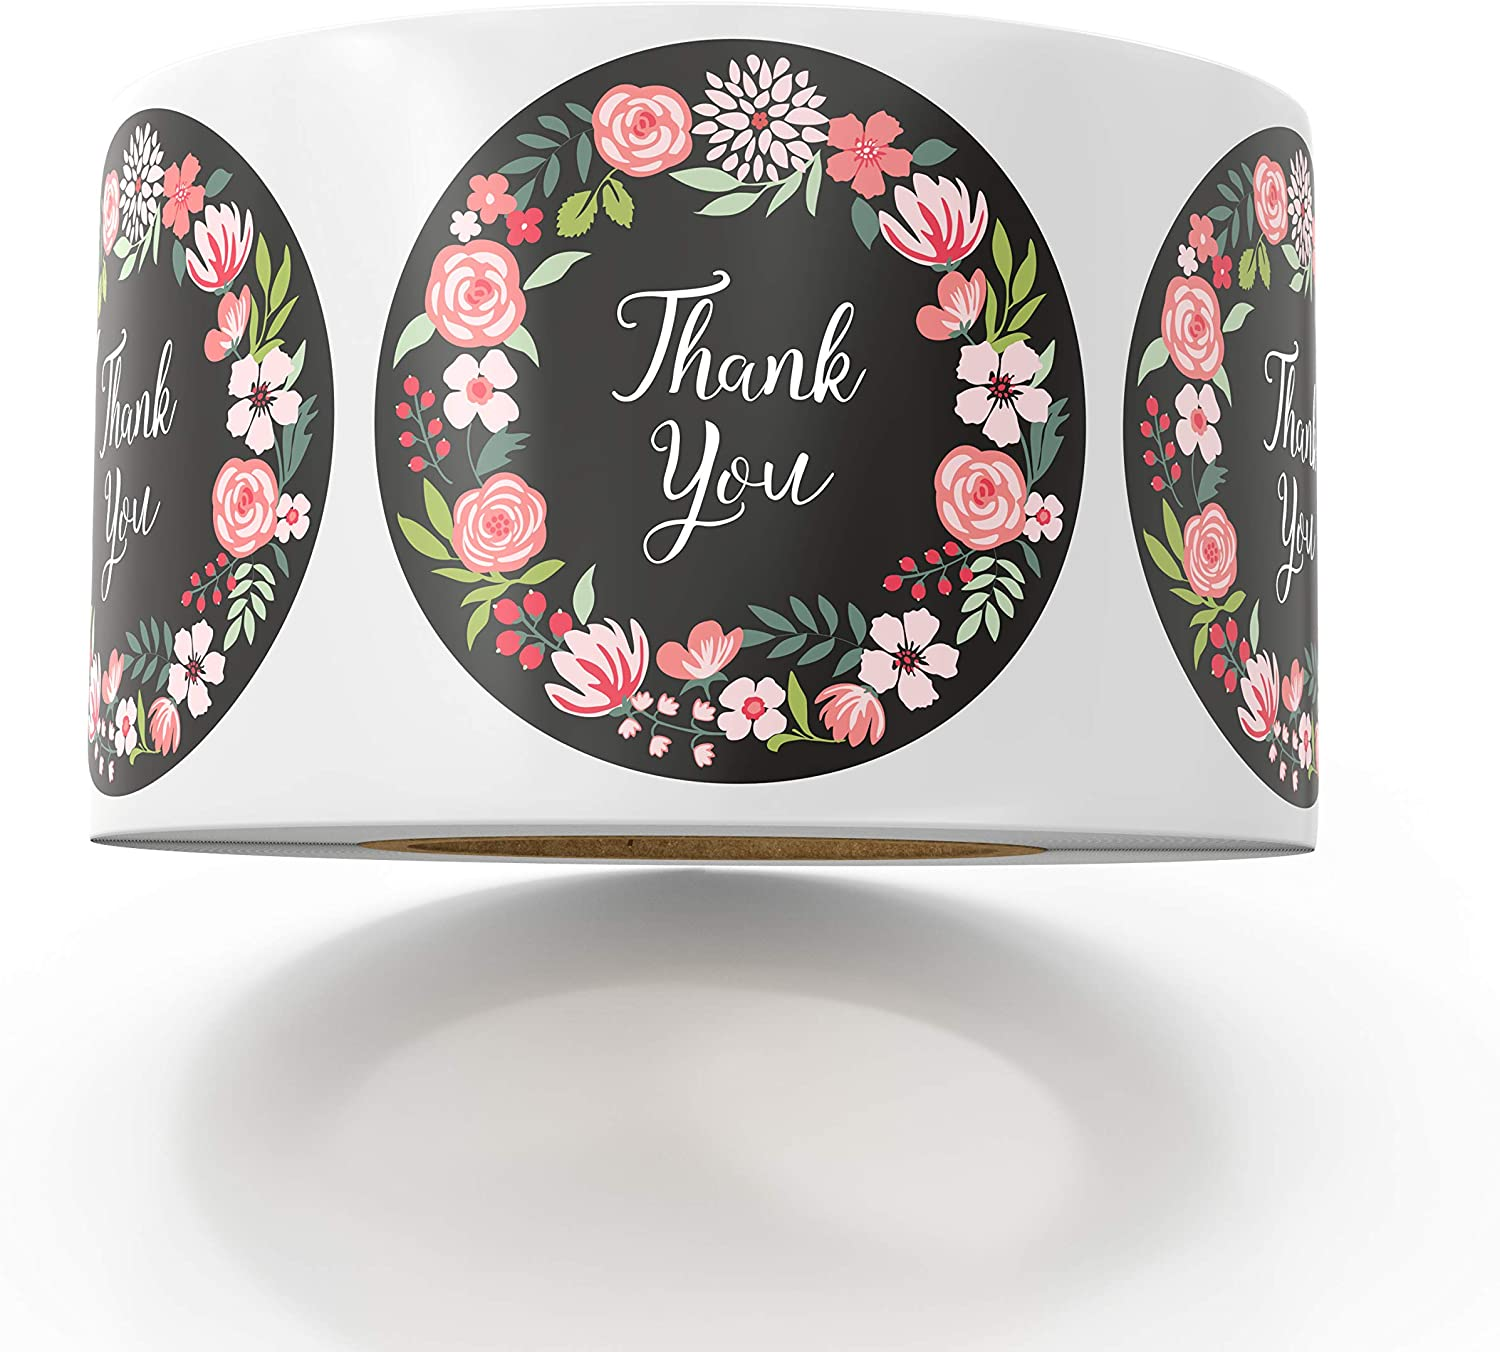 Thank You Stickers 1 inch 500pcs Floral Scrapbook Stickers for Company Giveaway Birthday Party Favors Labels Mailing Supplies